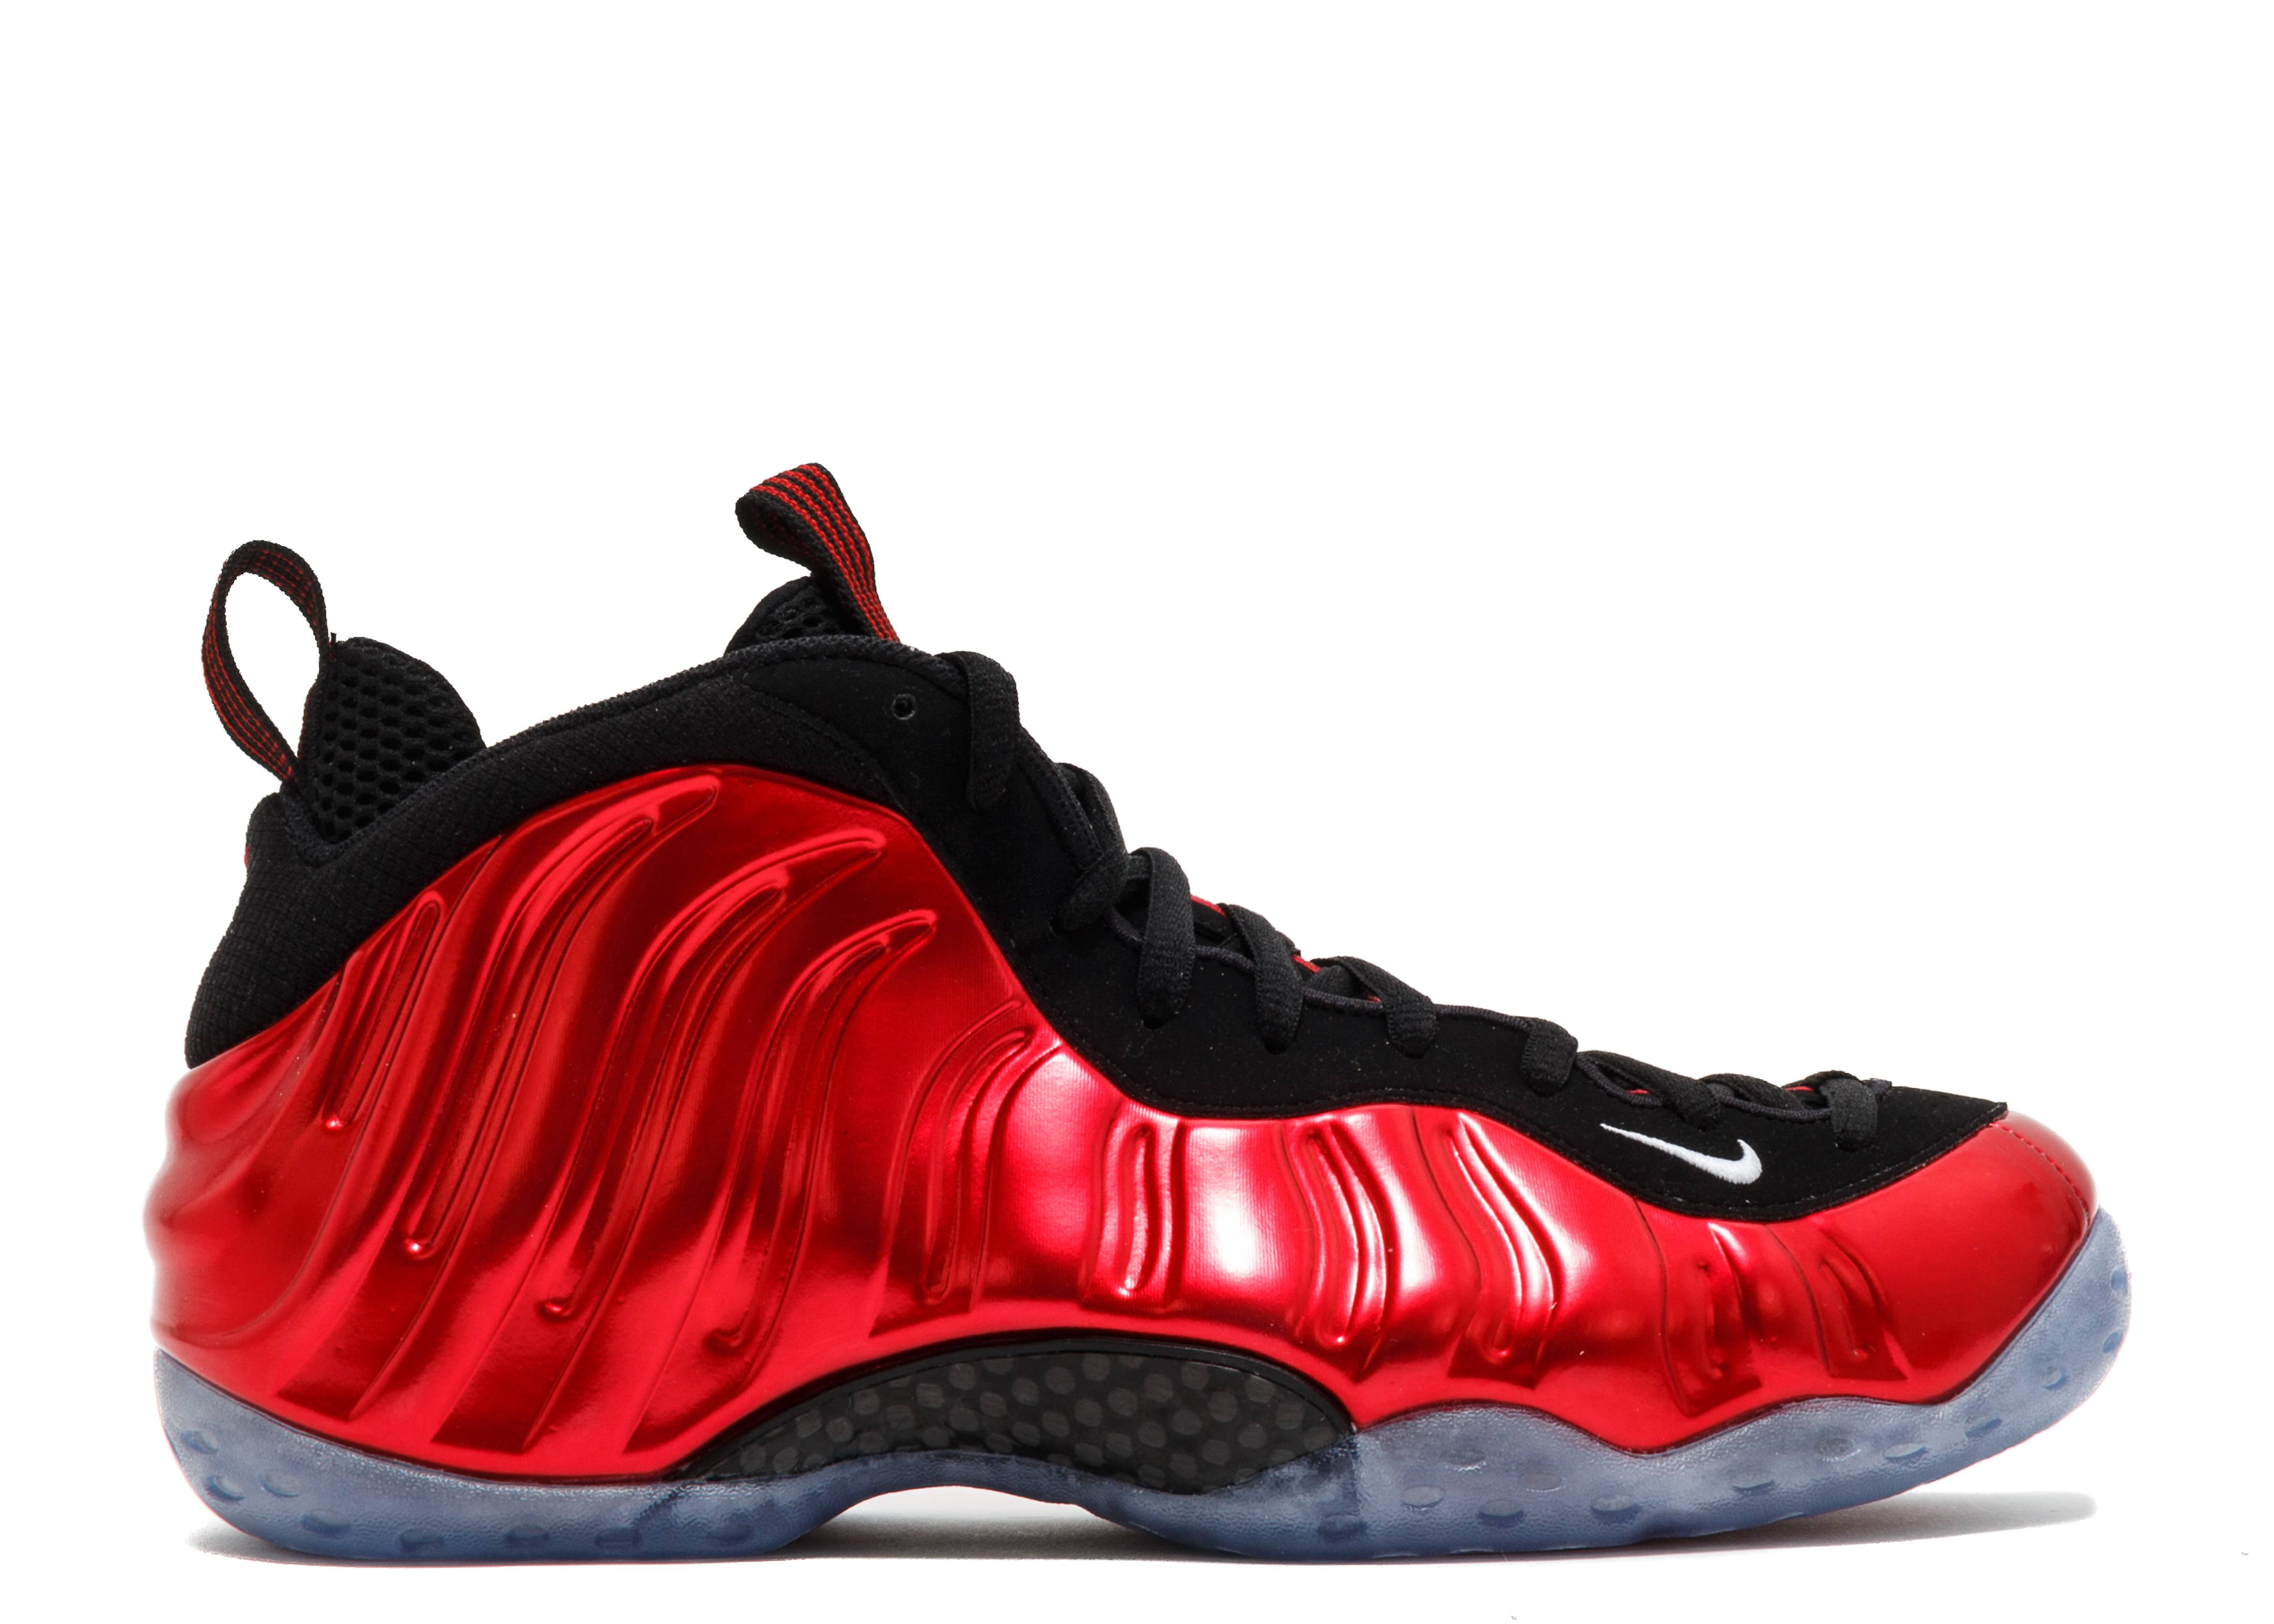 low priced ff46a 89aec Air Foamposite One